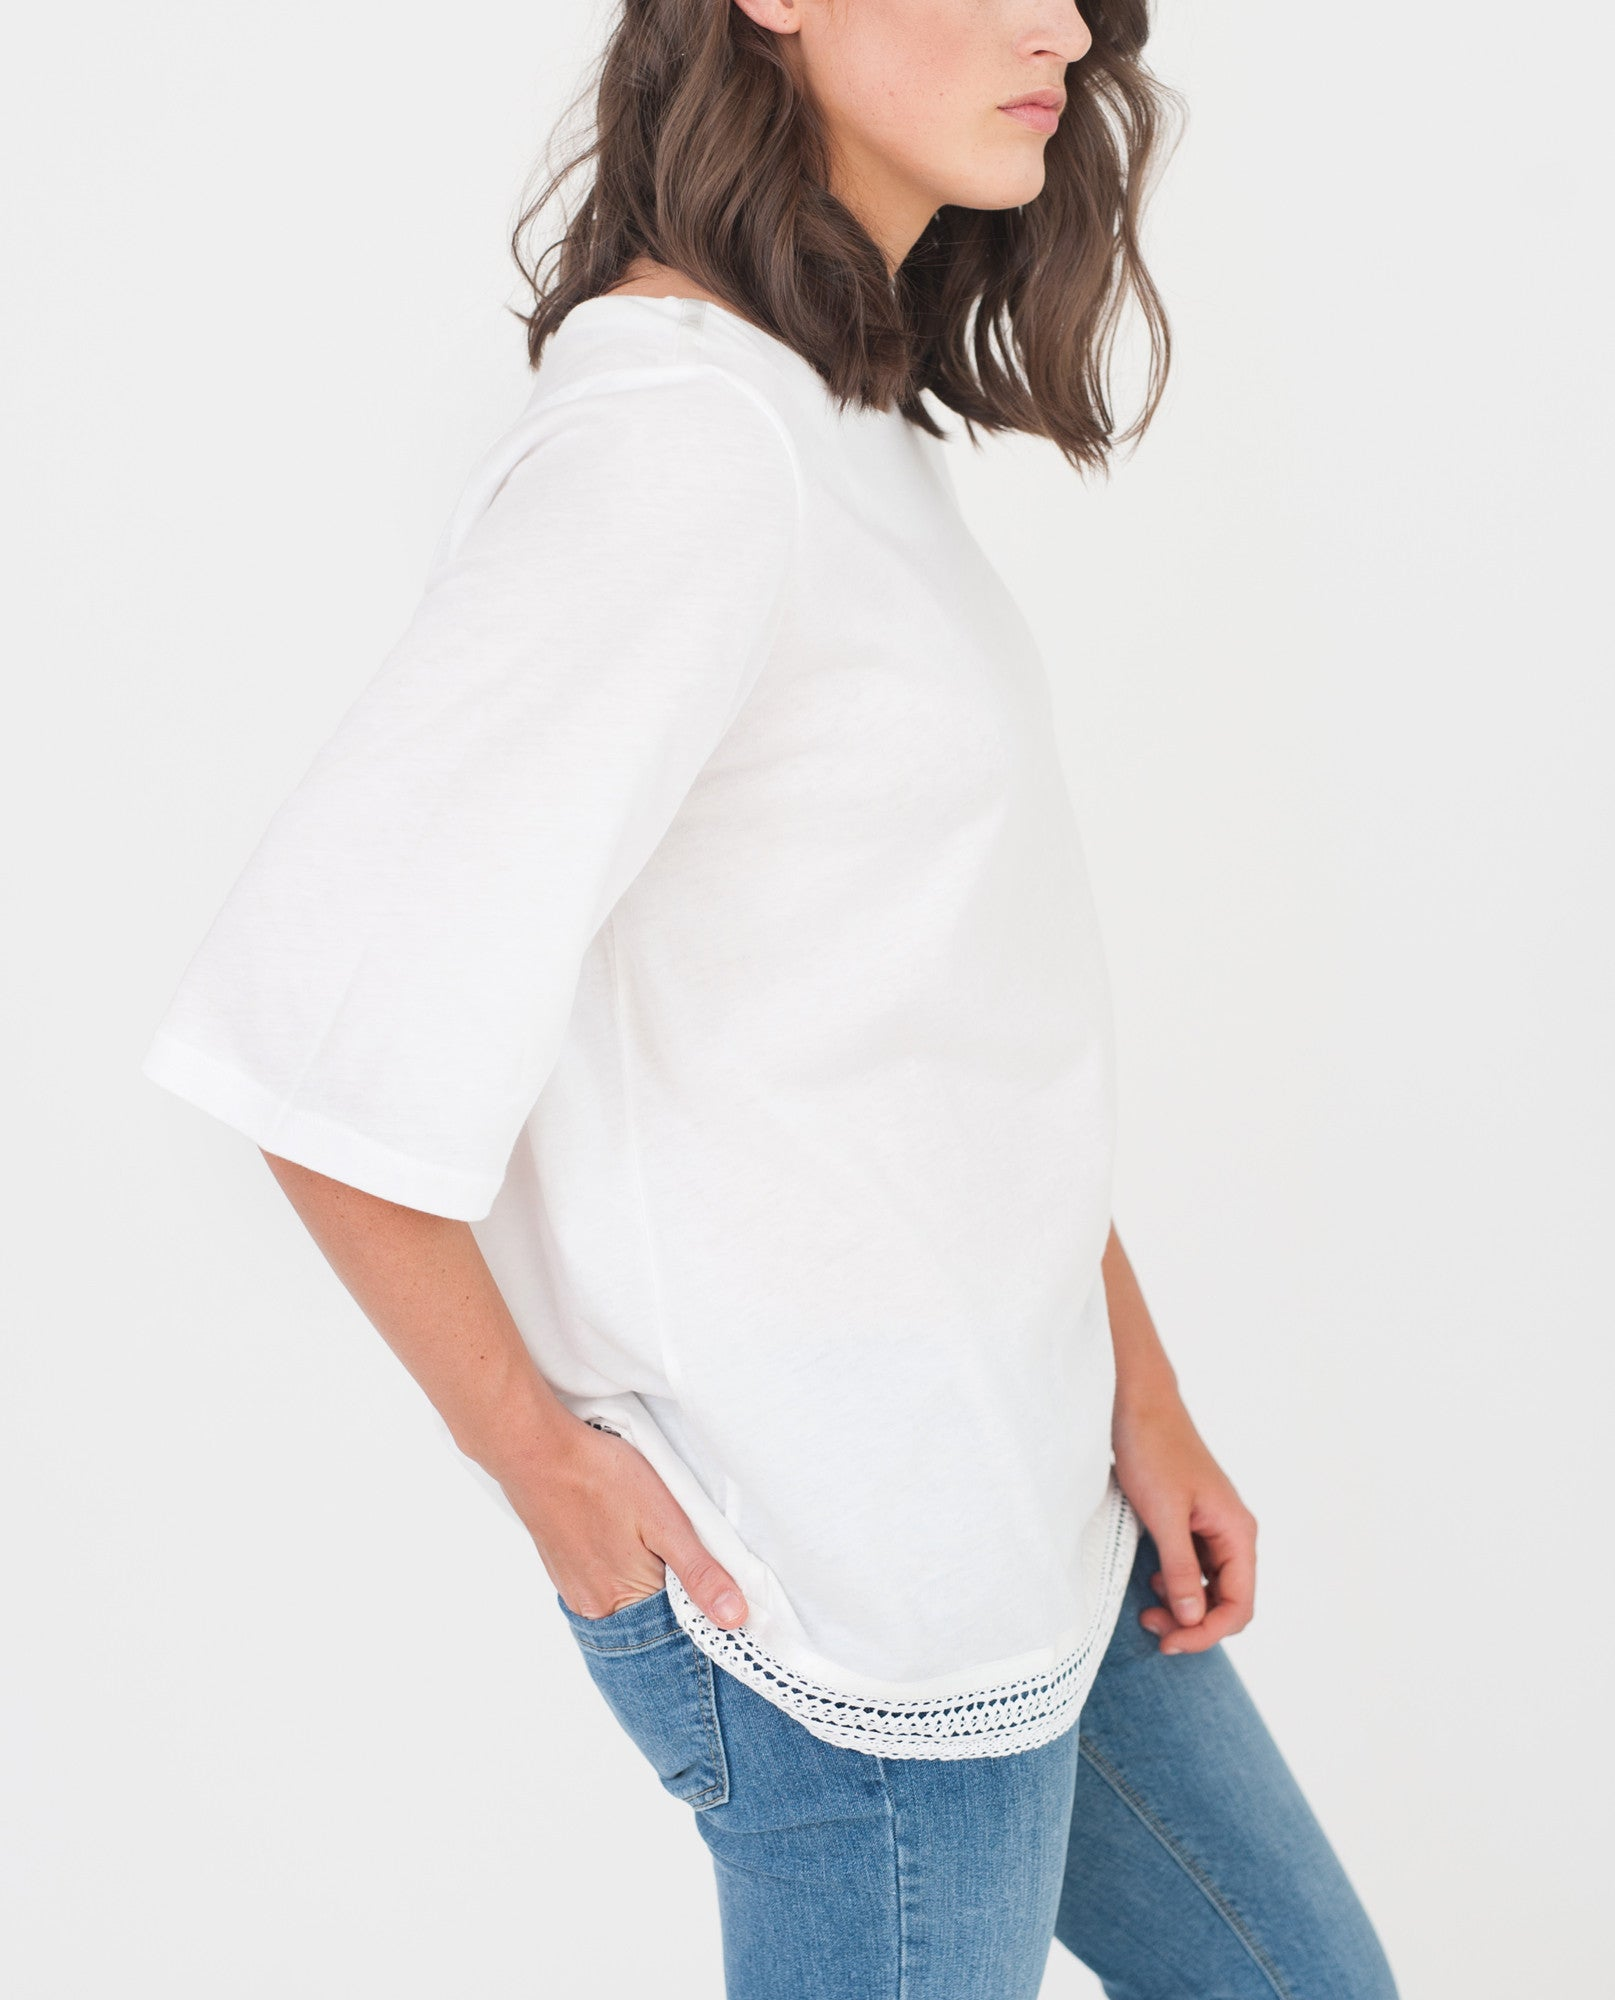 BRIELLE Organic Cotton Top In White